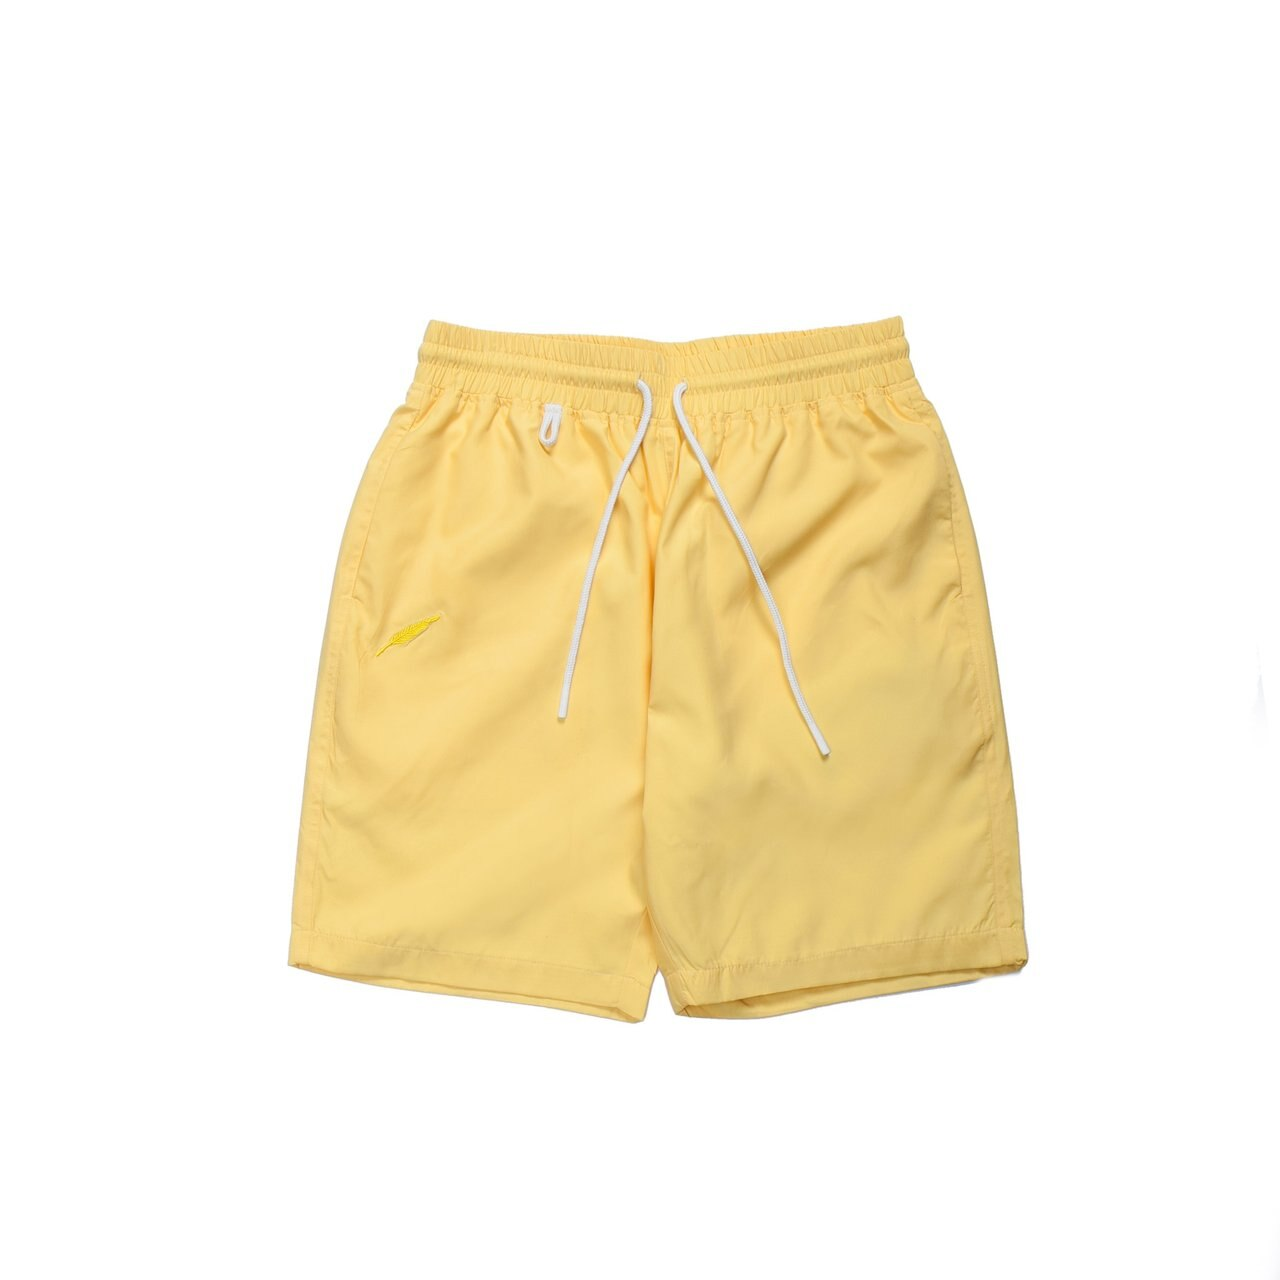 BO SHORT - LEMON